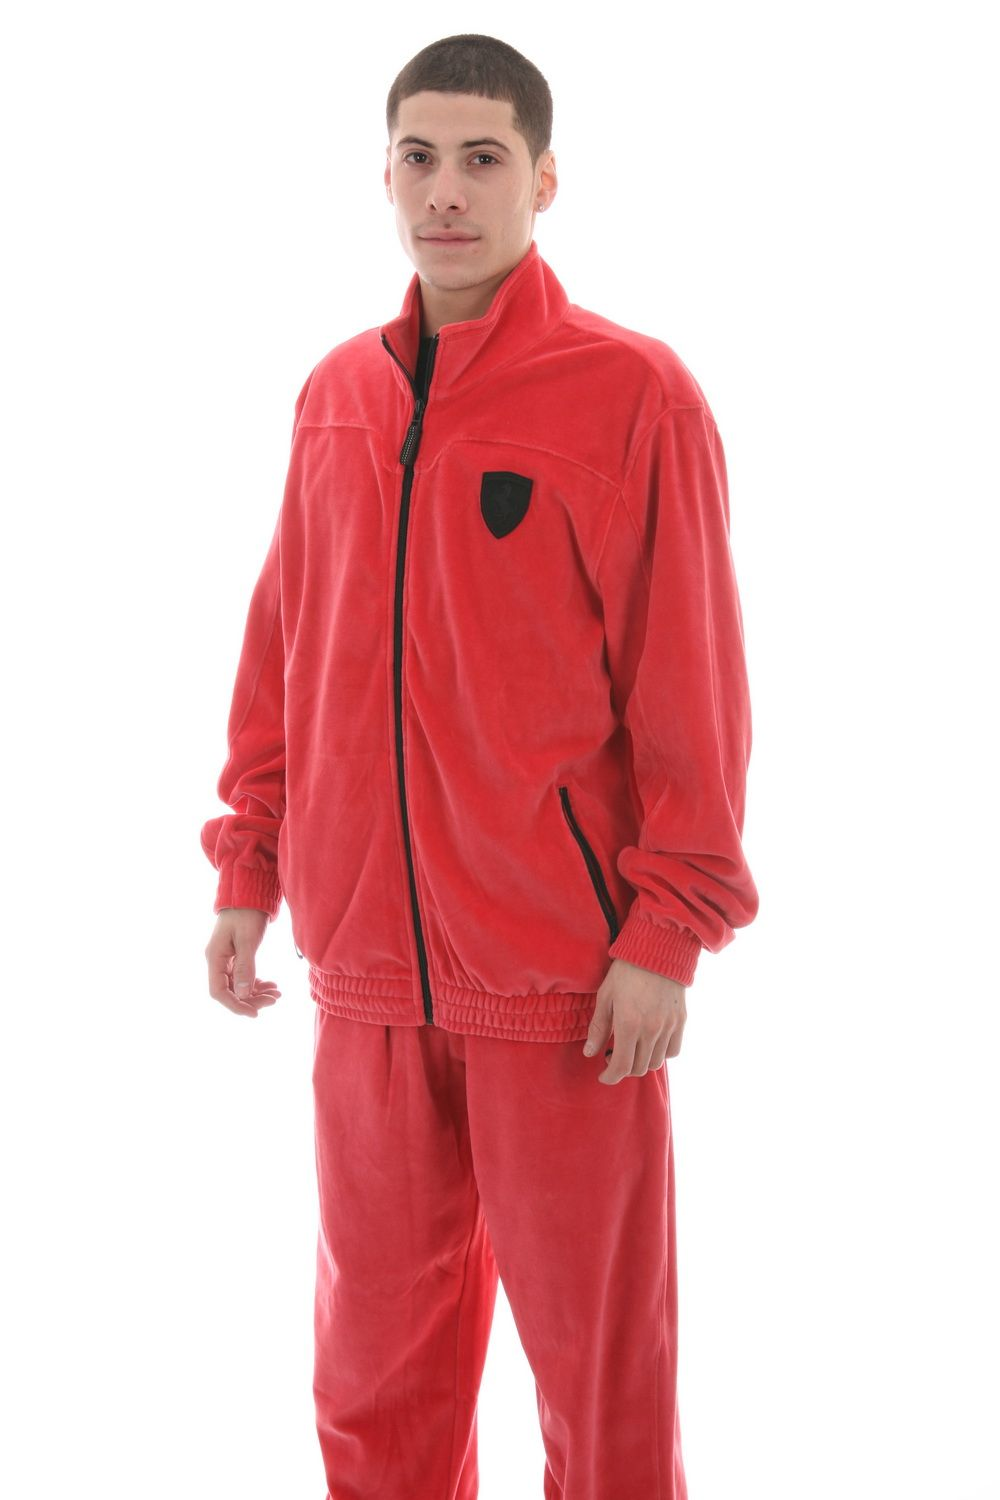 9dd68c6b4d1 Men's Velour Sweat Suits | Puma Men's Ferrari Lifestyle Velour Sweatsuit  (565310-03)